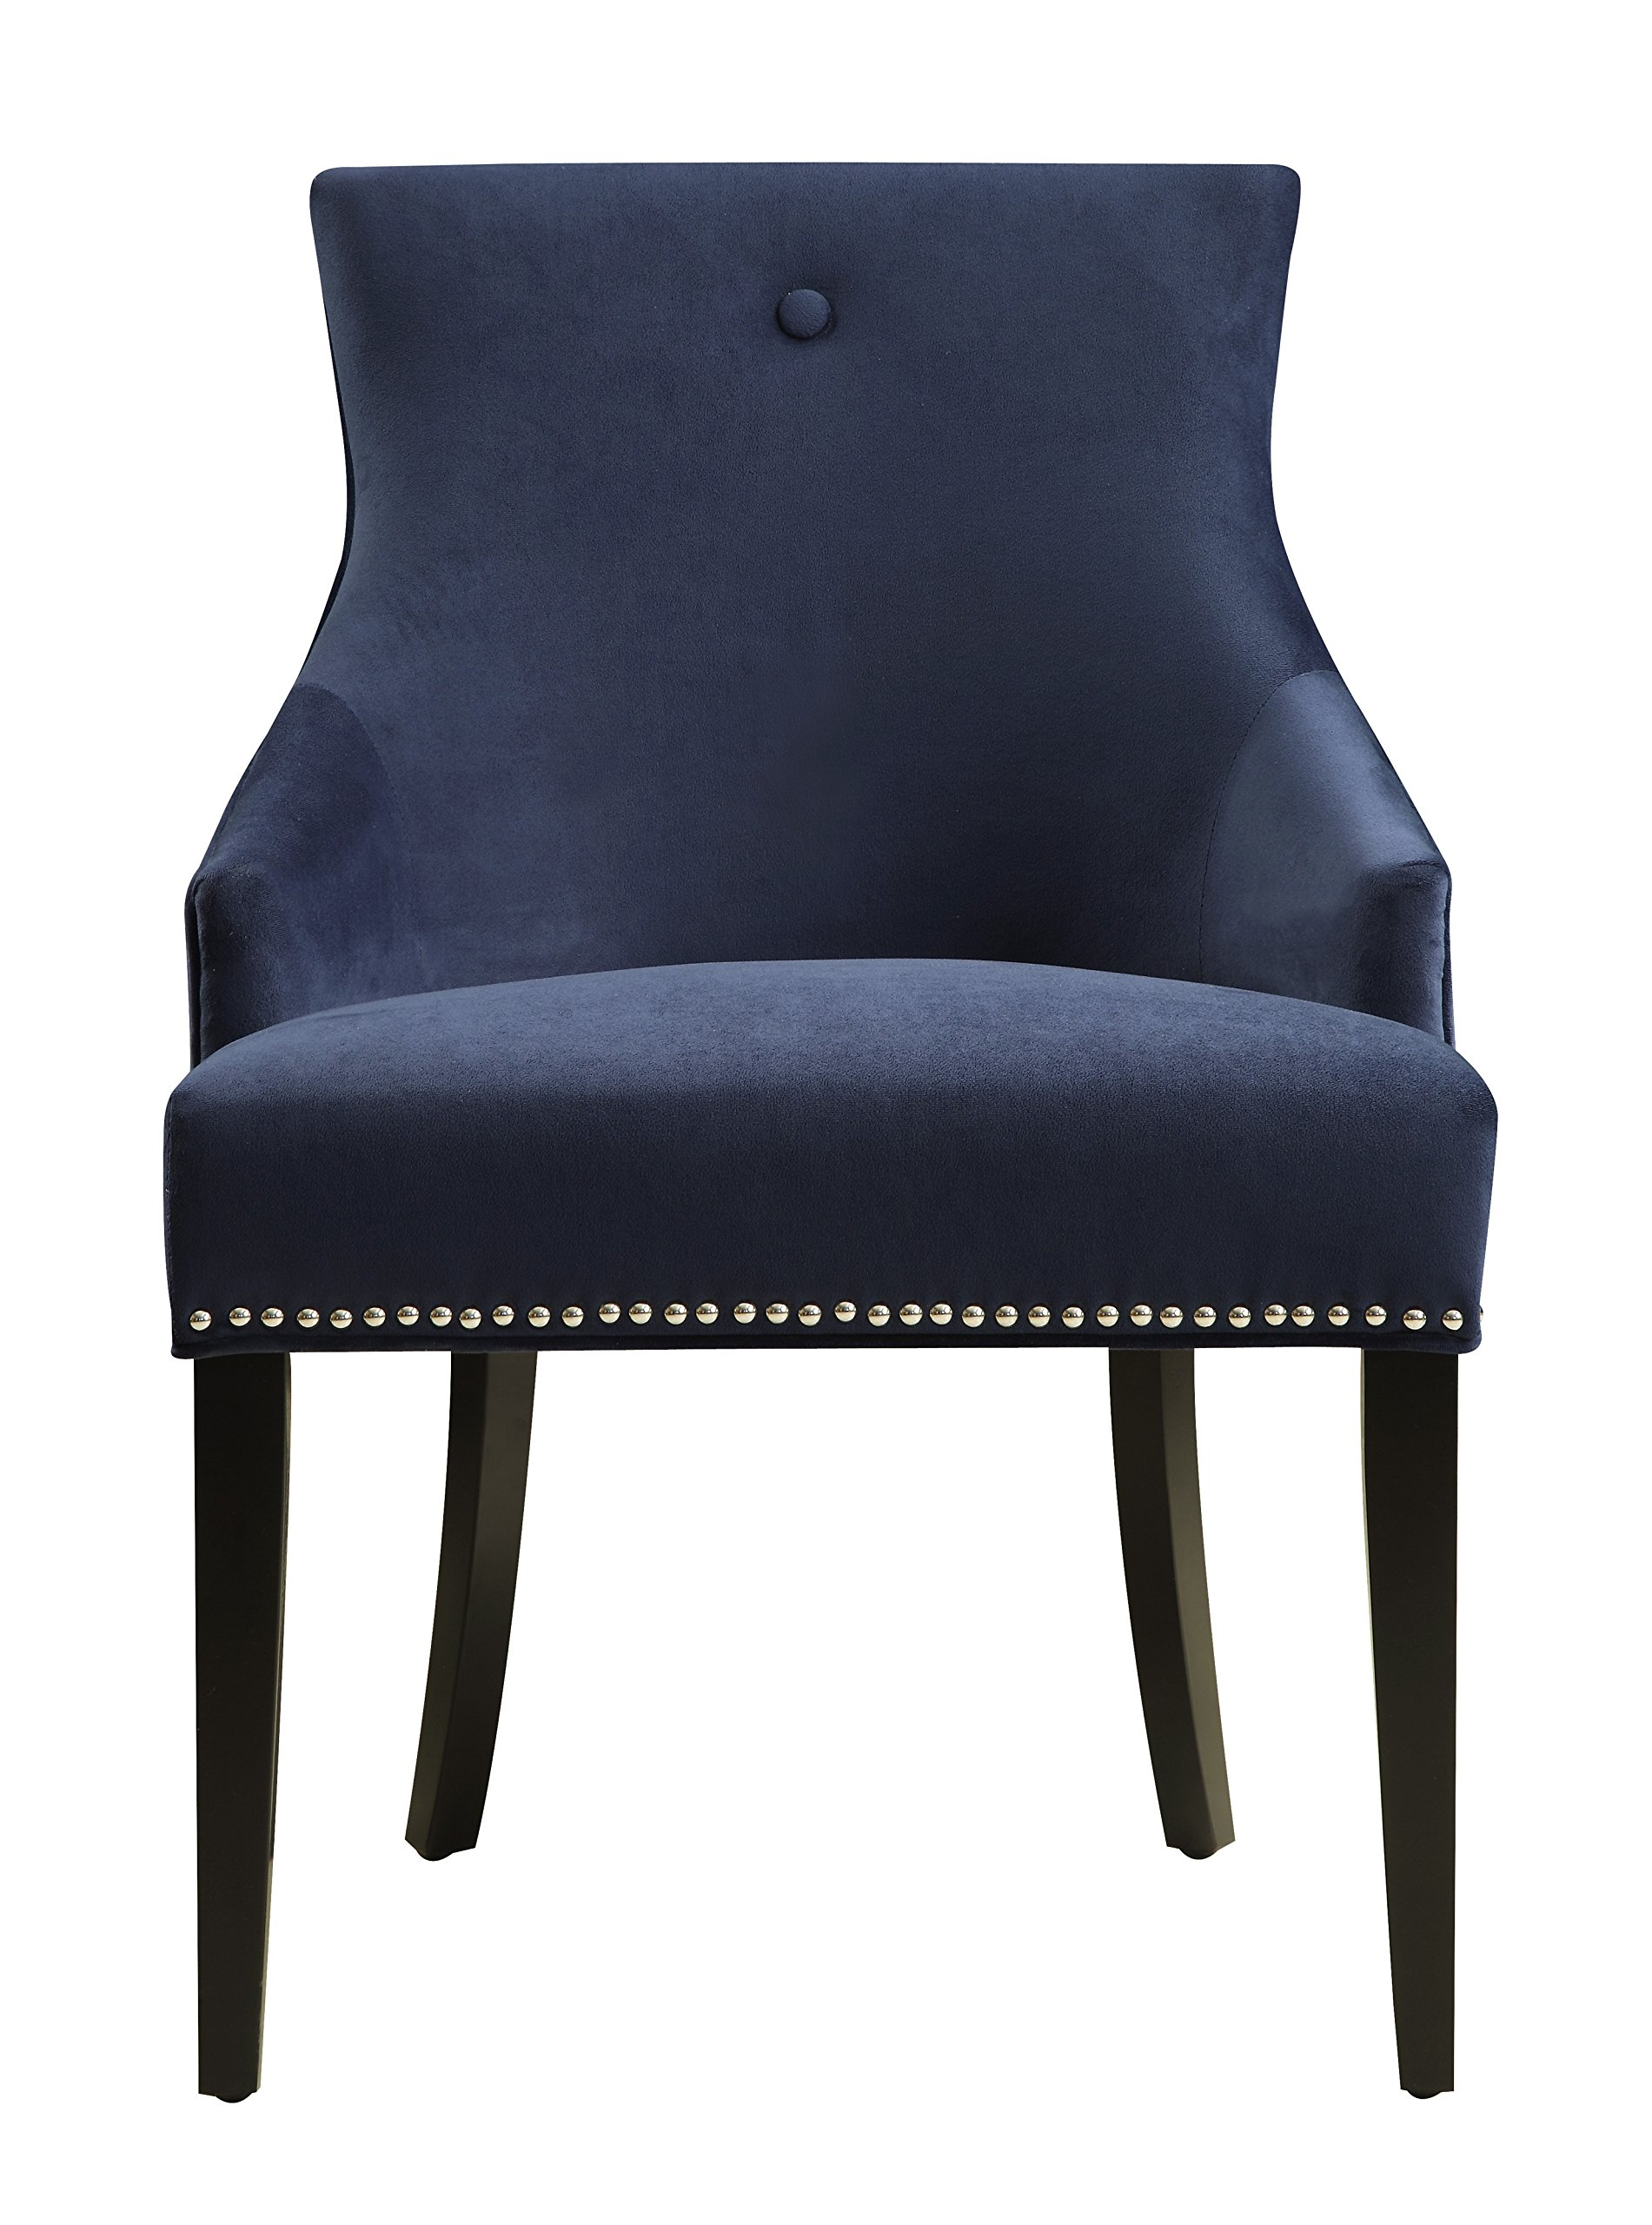 Pulaski DS-2520-900-393 Urban Accents Button Back Upholstered Dining Chair, 23.03'' X 25.2'' X 33.86'', Navy